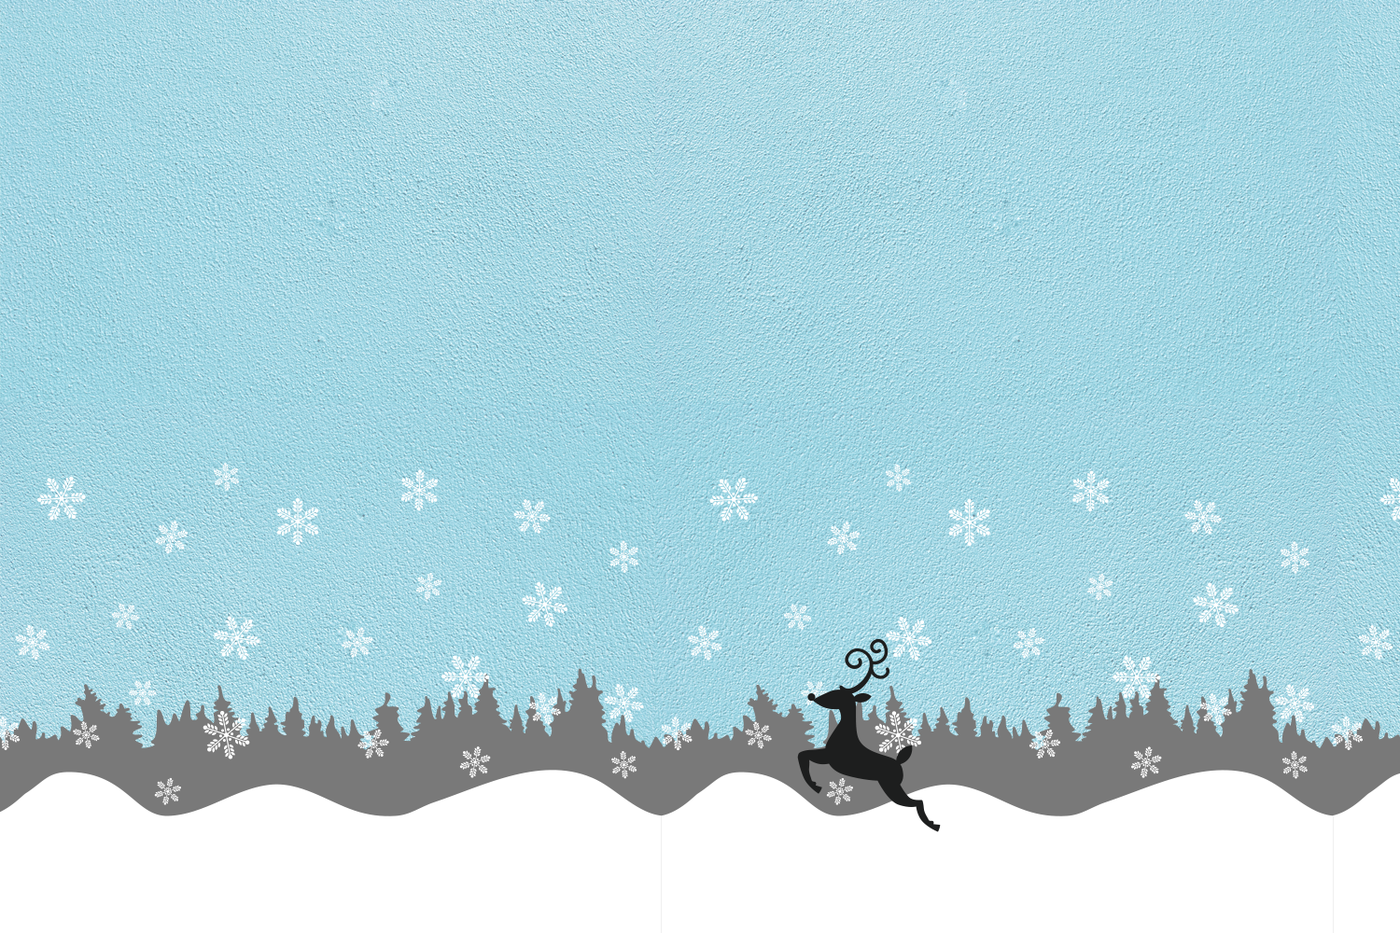 Seamless Winter Snow Scene With Deer Svg Png Dxf By Risa Rocks It Thehungryjpeg Com